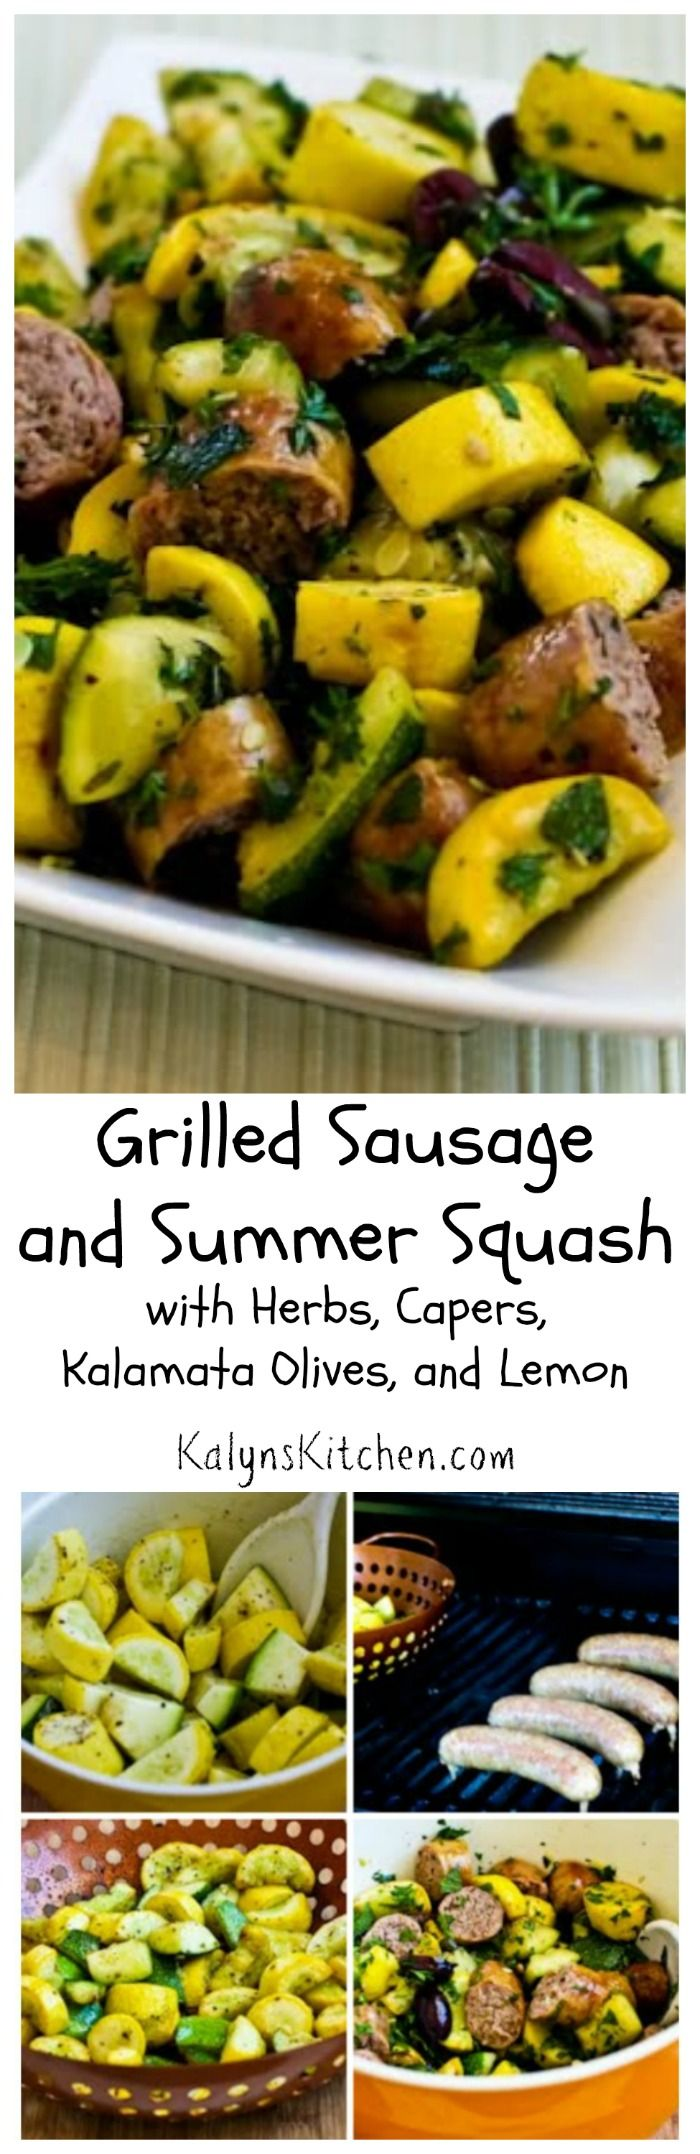 For a super-easy summer dinner, try this Grilled Sausage and Summer Squash with Herbs, Capers, Kalamata Olives, and Lemon.